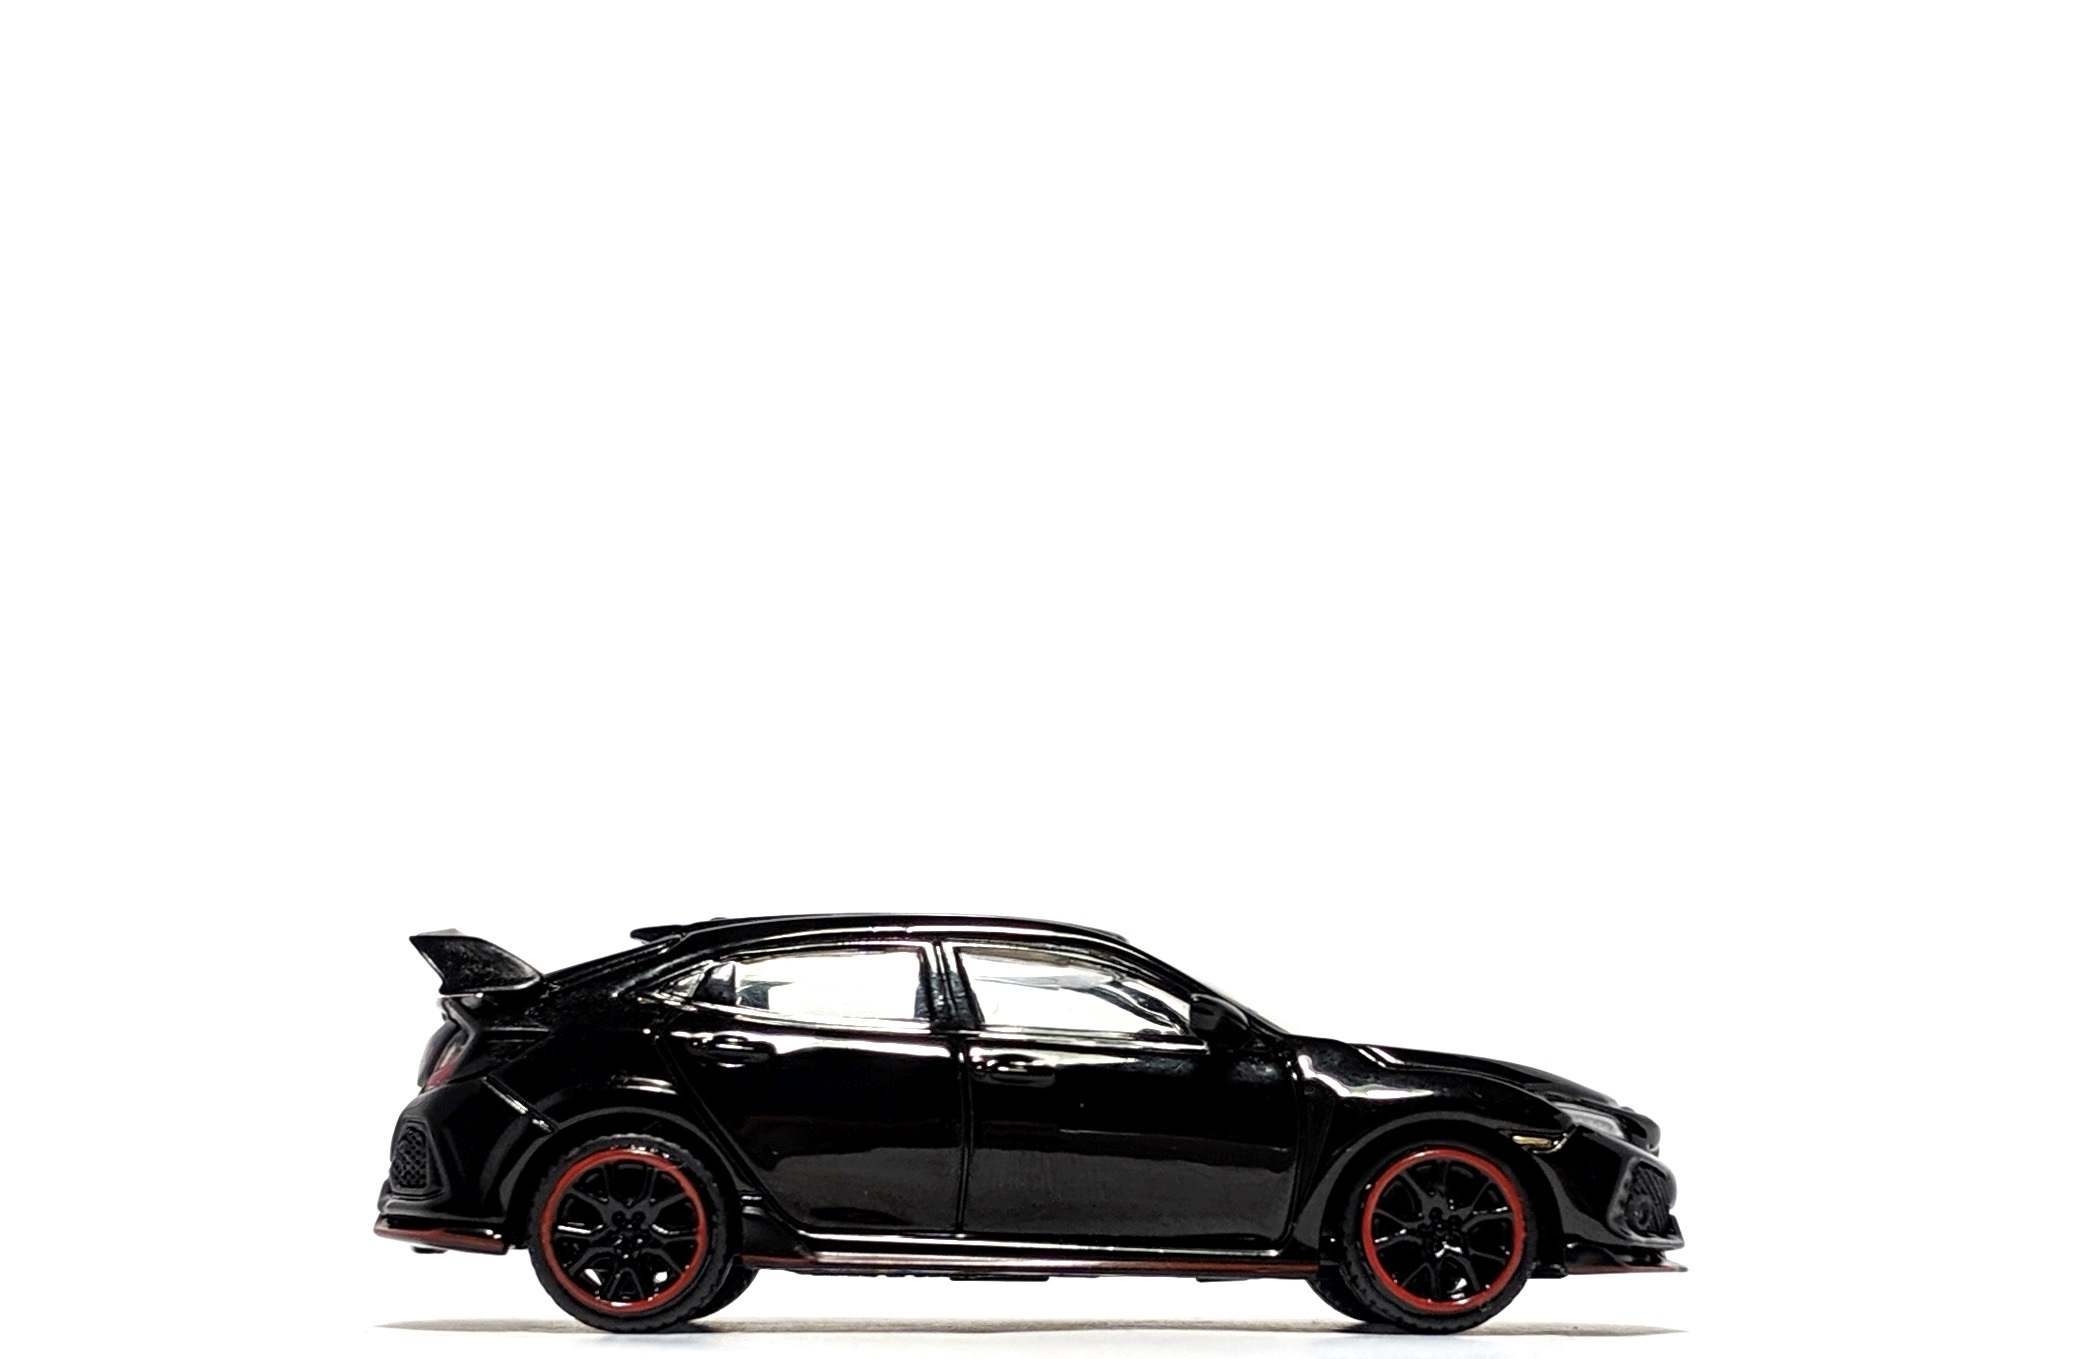 Honda Civic Type R in Crystal Black, by Mini GT